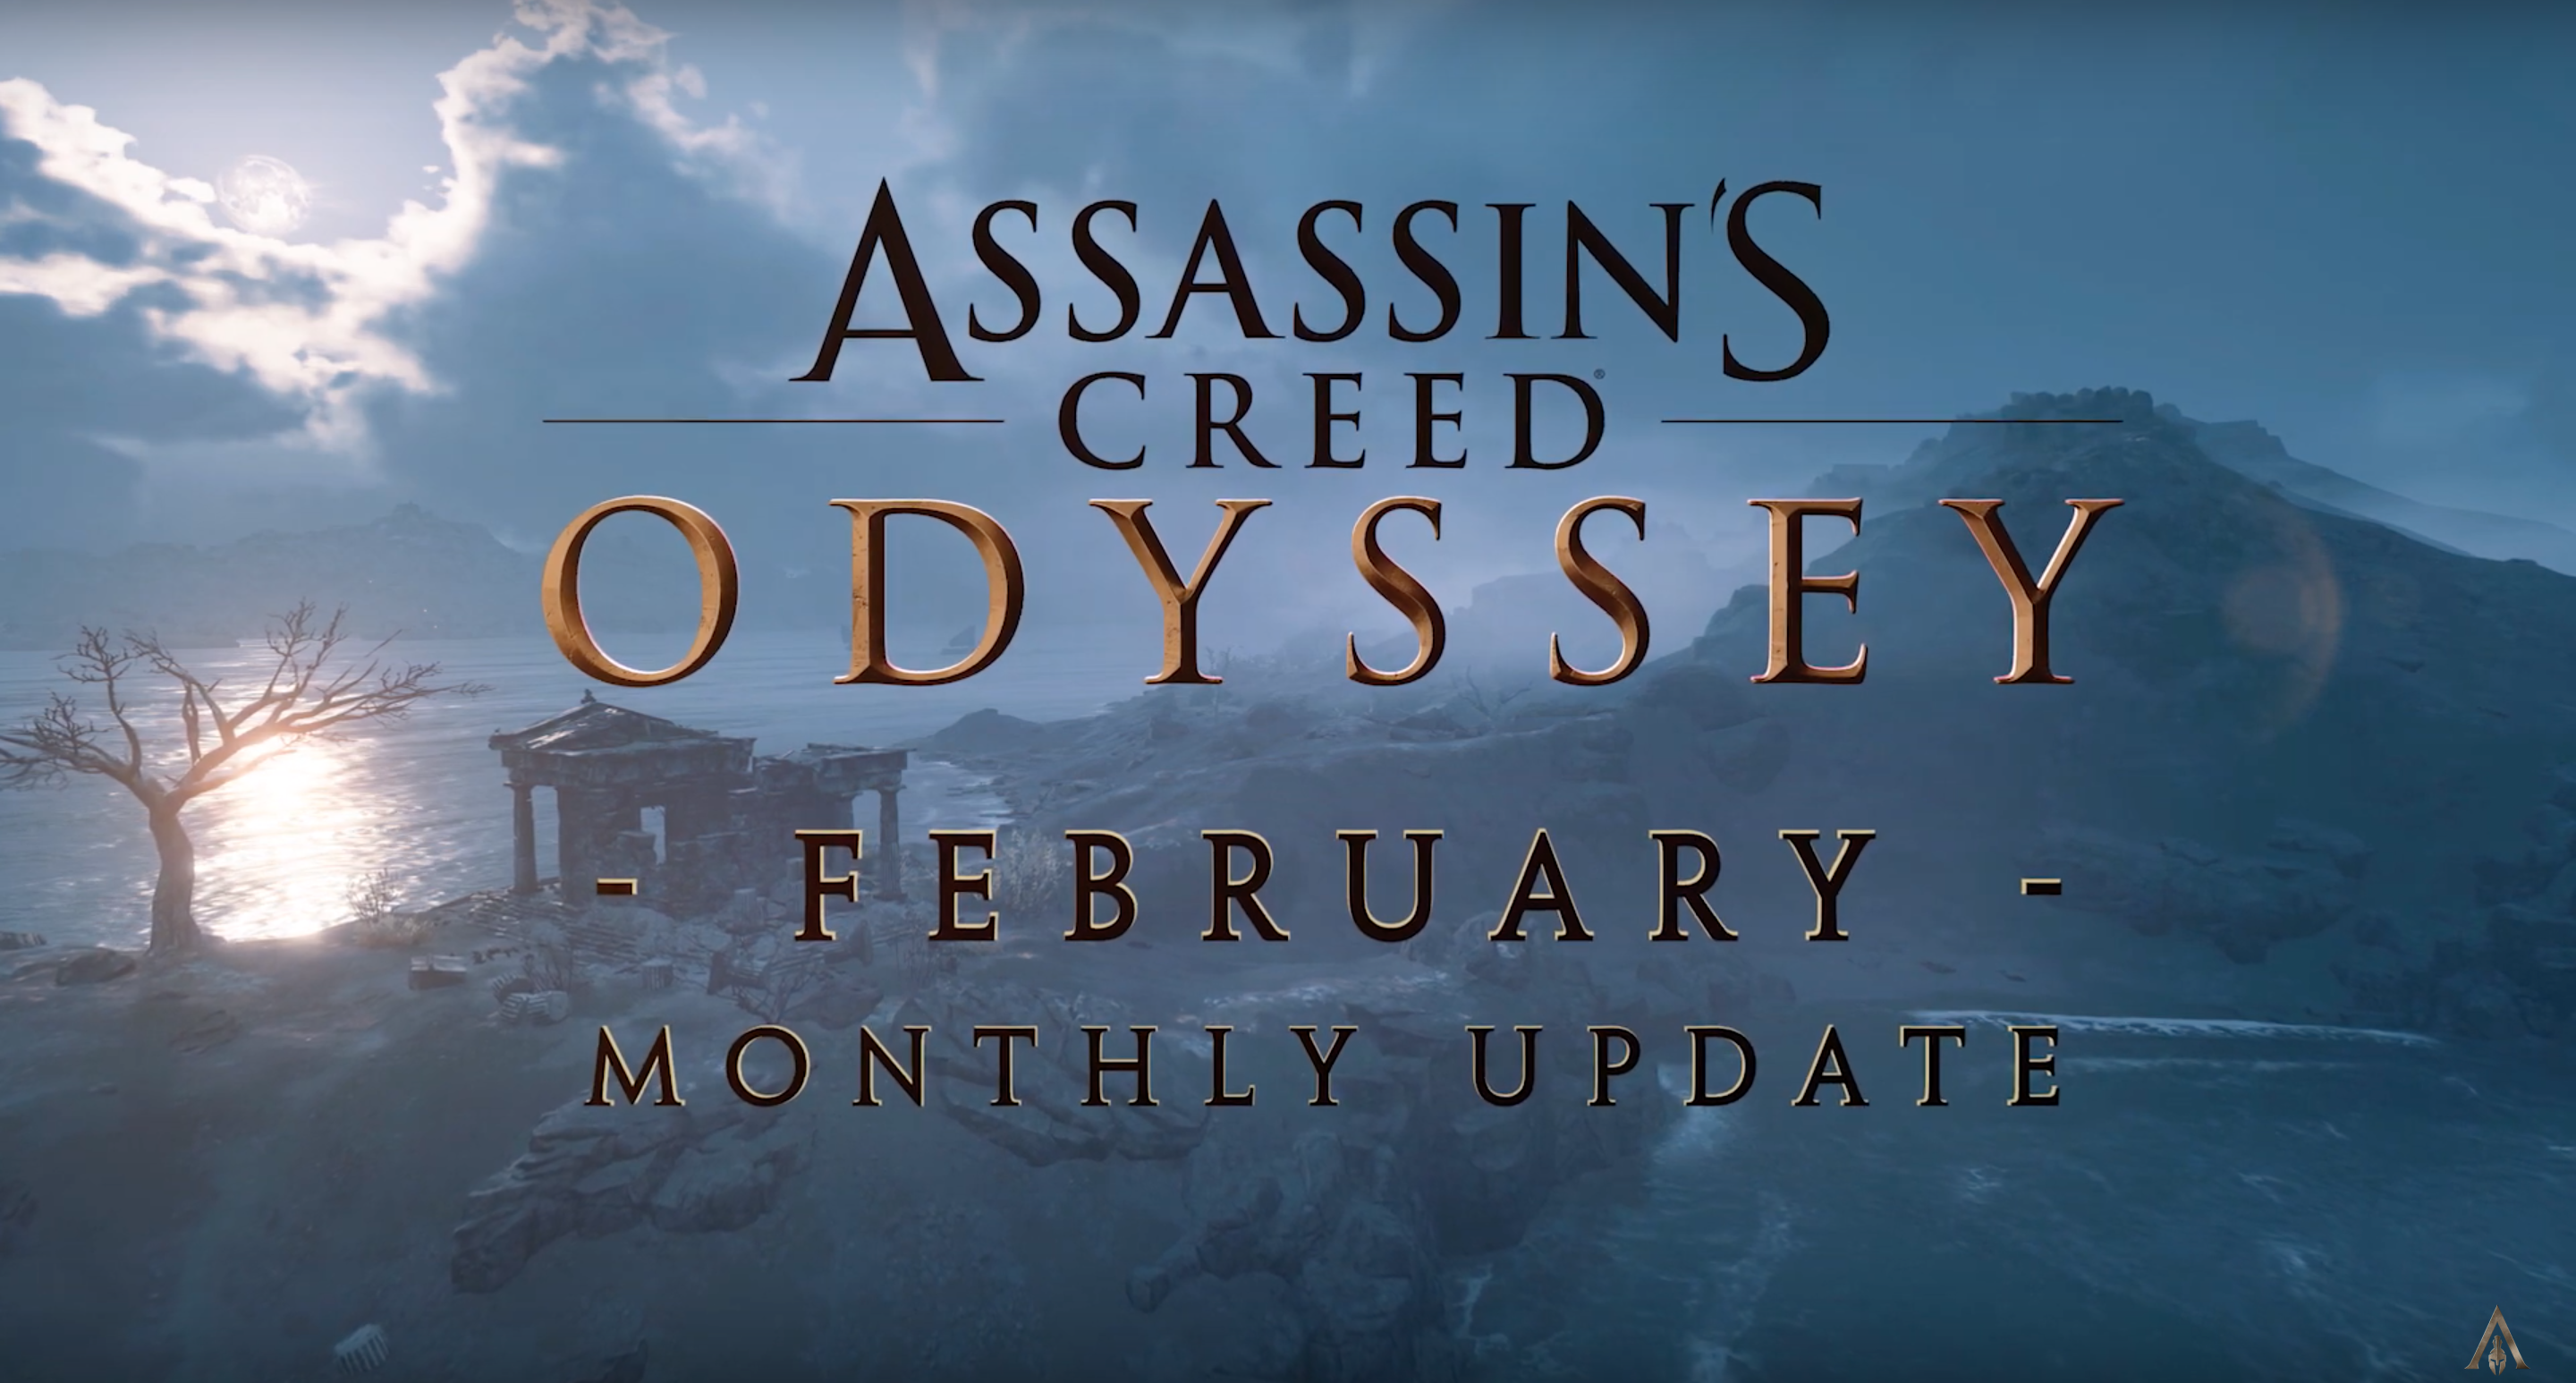 Assassin's Creed Odyssey – February Monthly Update